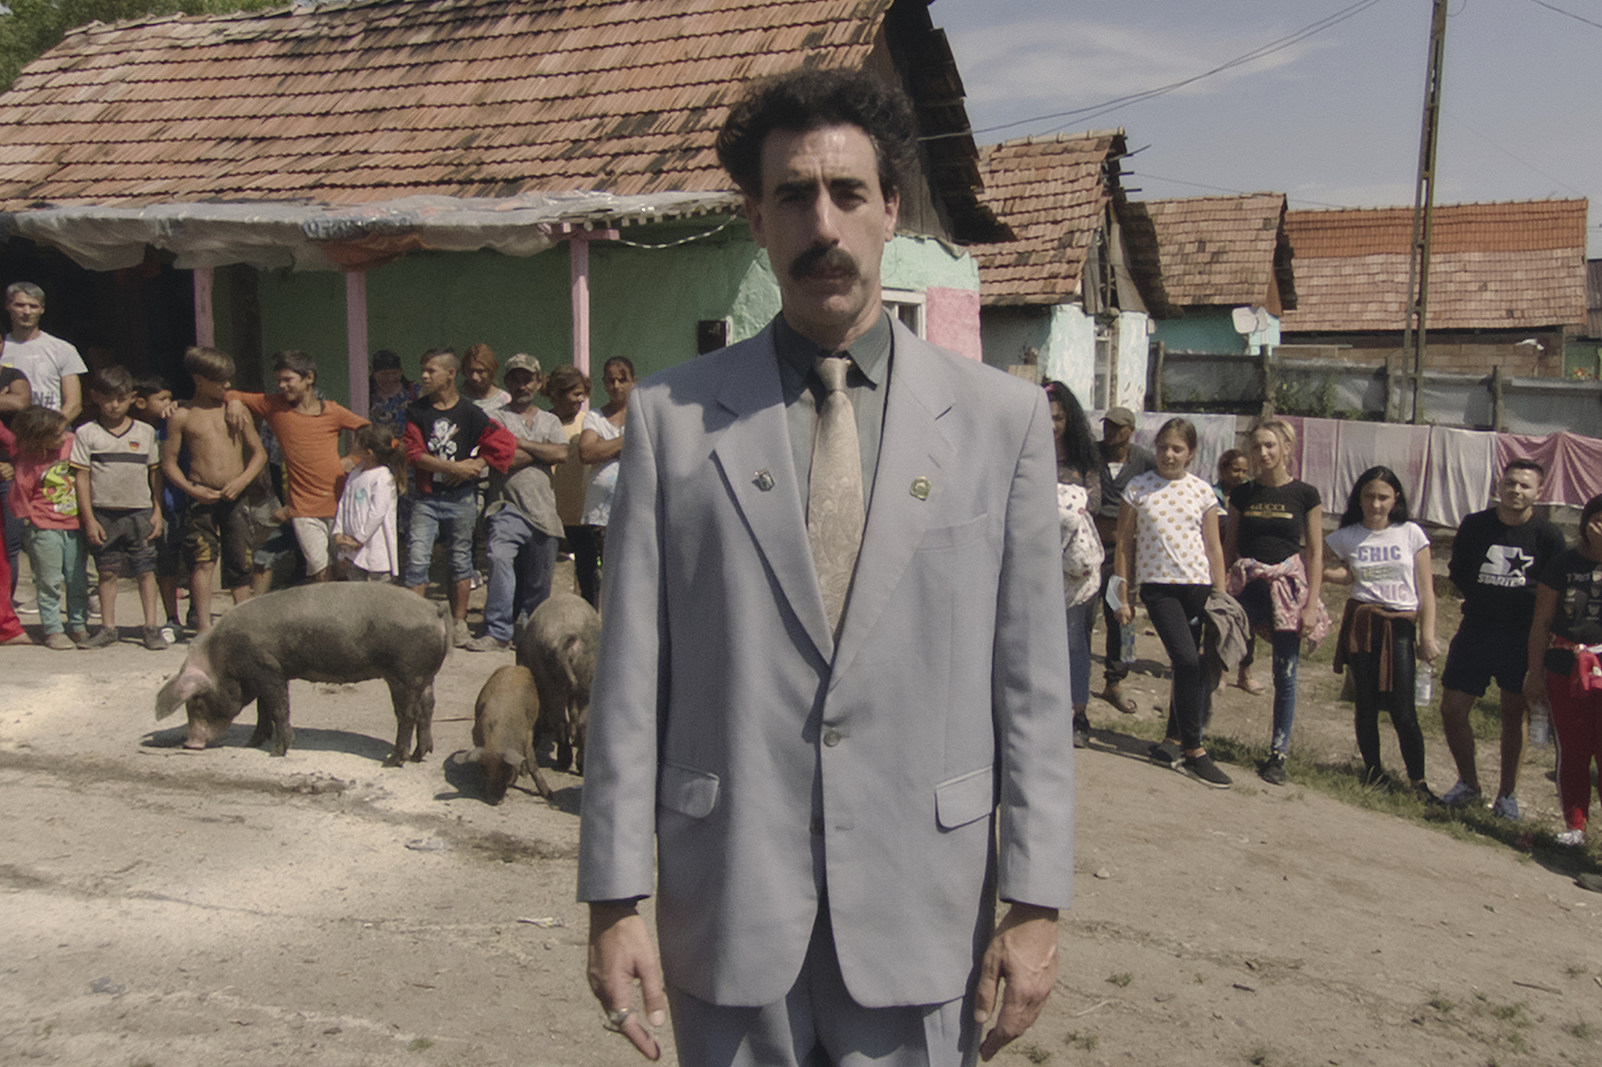 Amazon Says 'Tens of Millions of Customers' Streamed 'Borat 2'